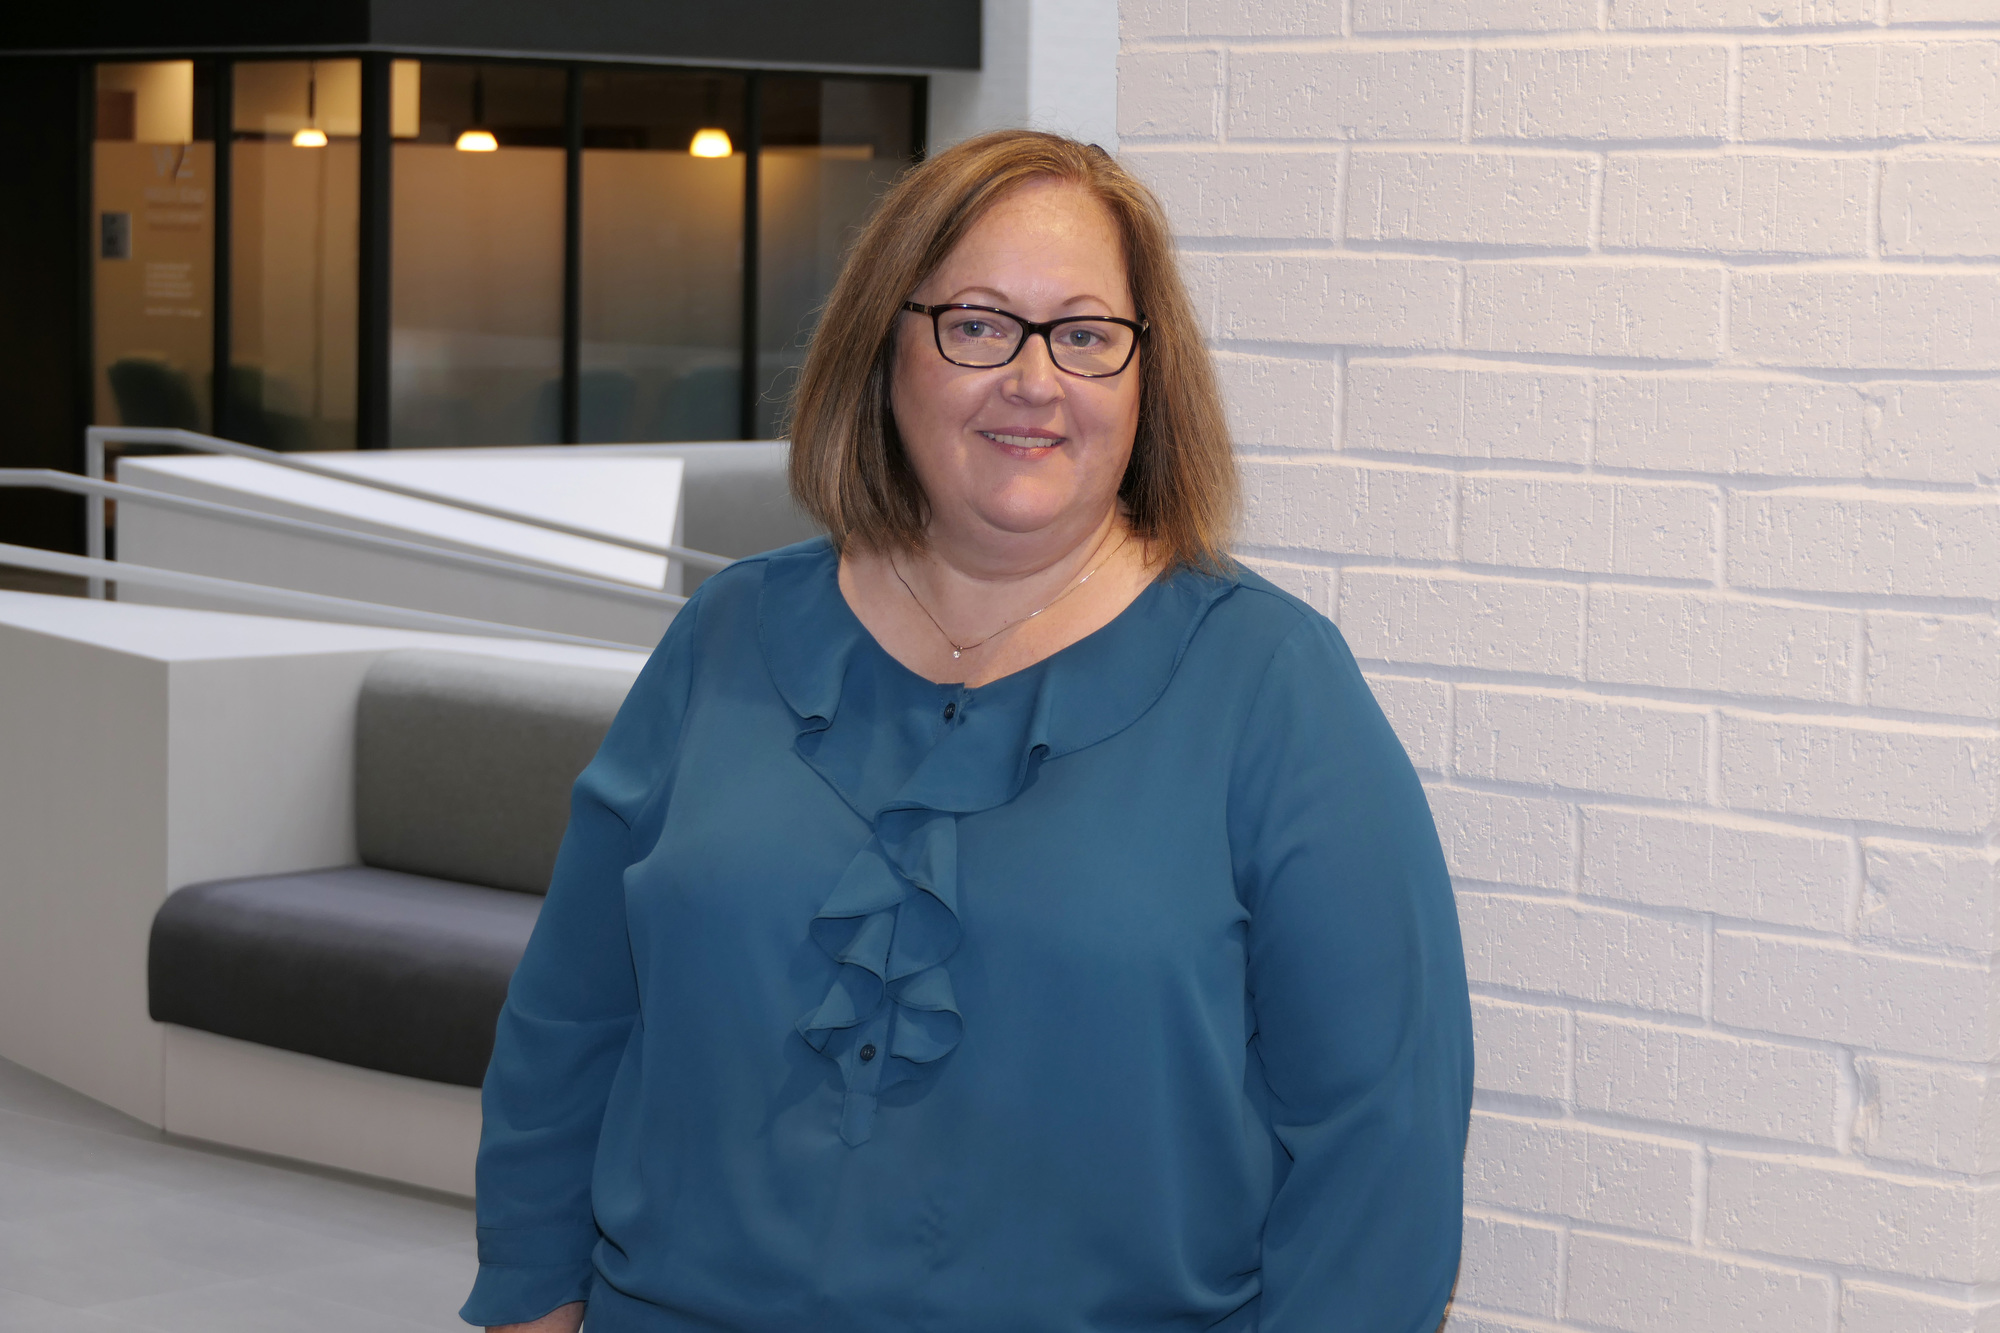 RMA Real Estate Services Hires Dawn Marsh as Senior Accounting Manager